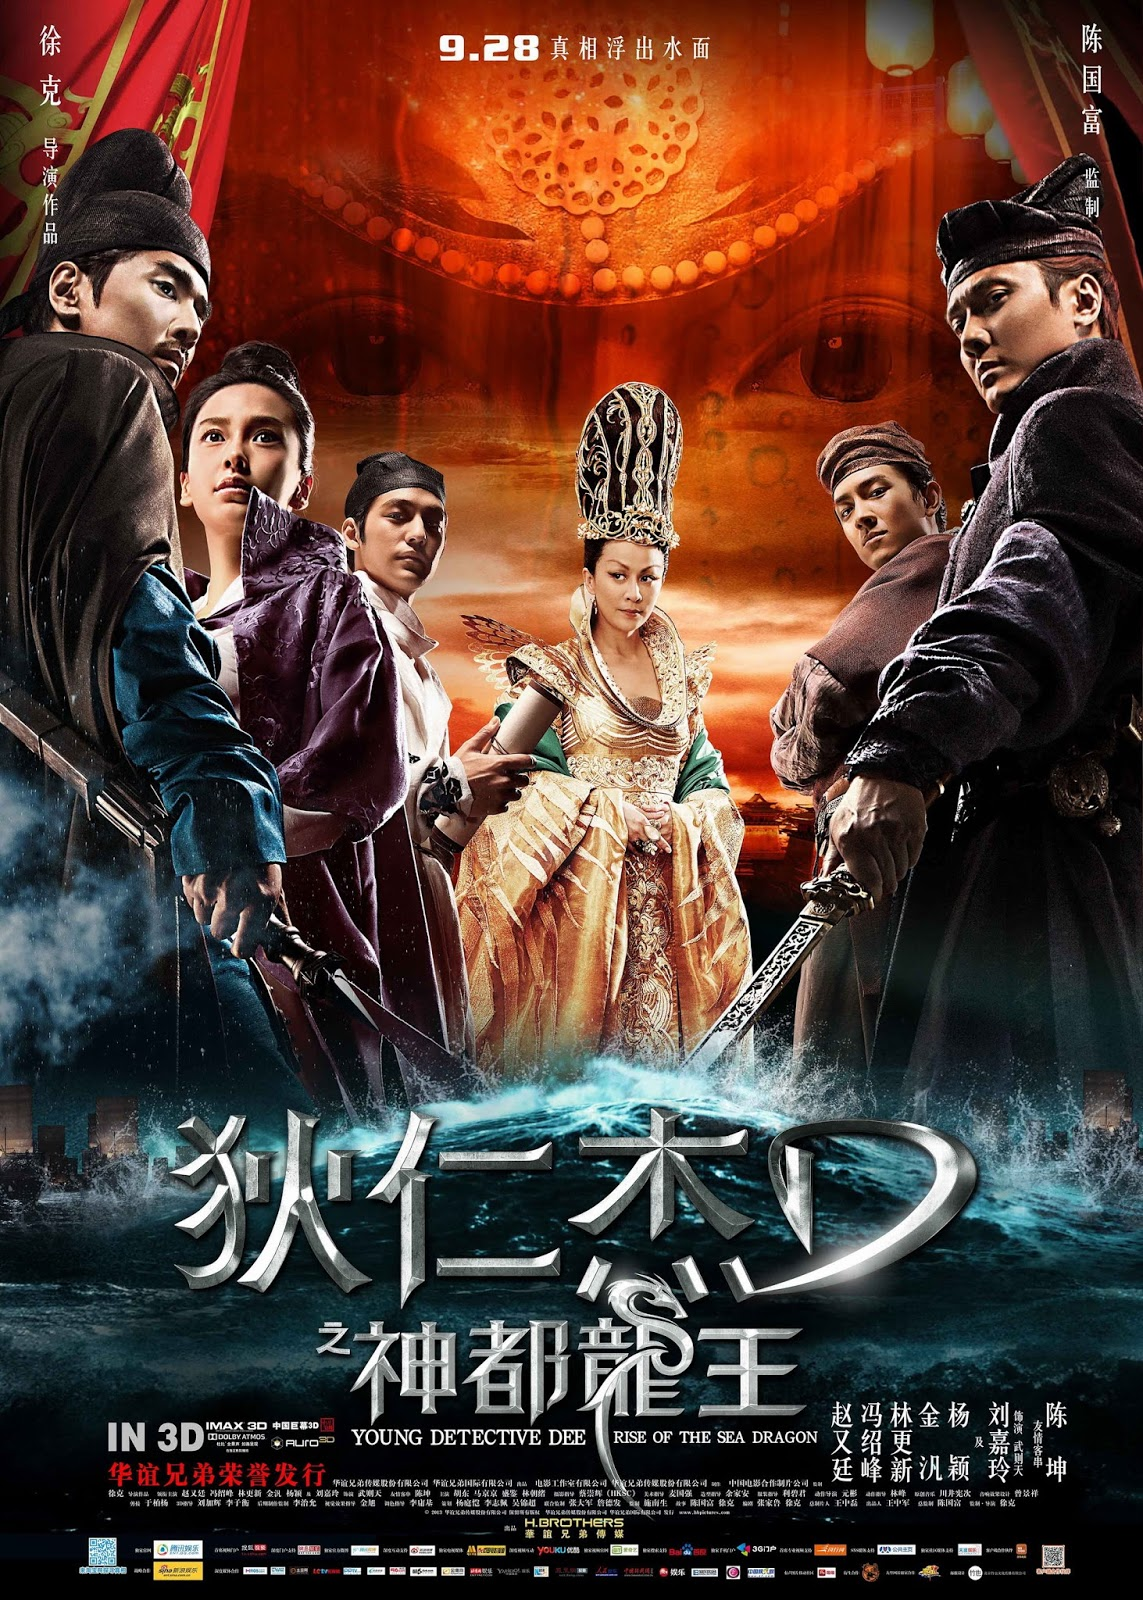 Young-Detective-Dee-Rise-of-the-Sea-Dragon-poster.jpg